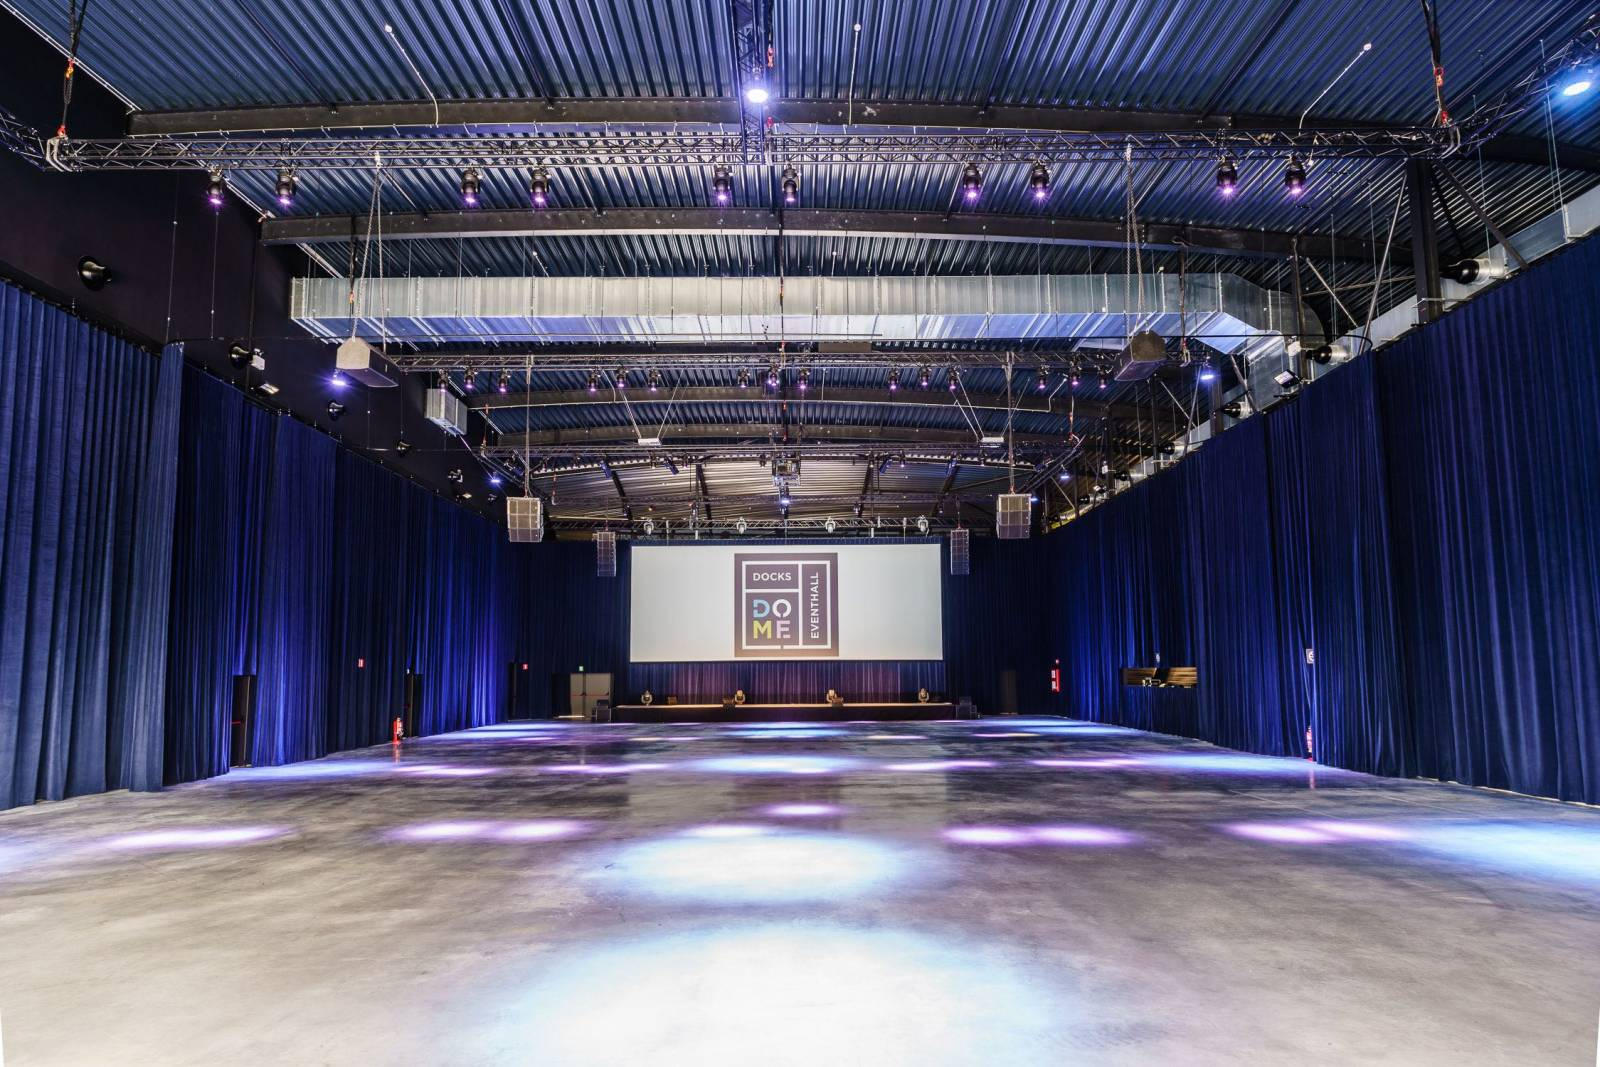 Docks Dome - Eventlocatie - Feestzaal - Brussel - House of Events - 7